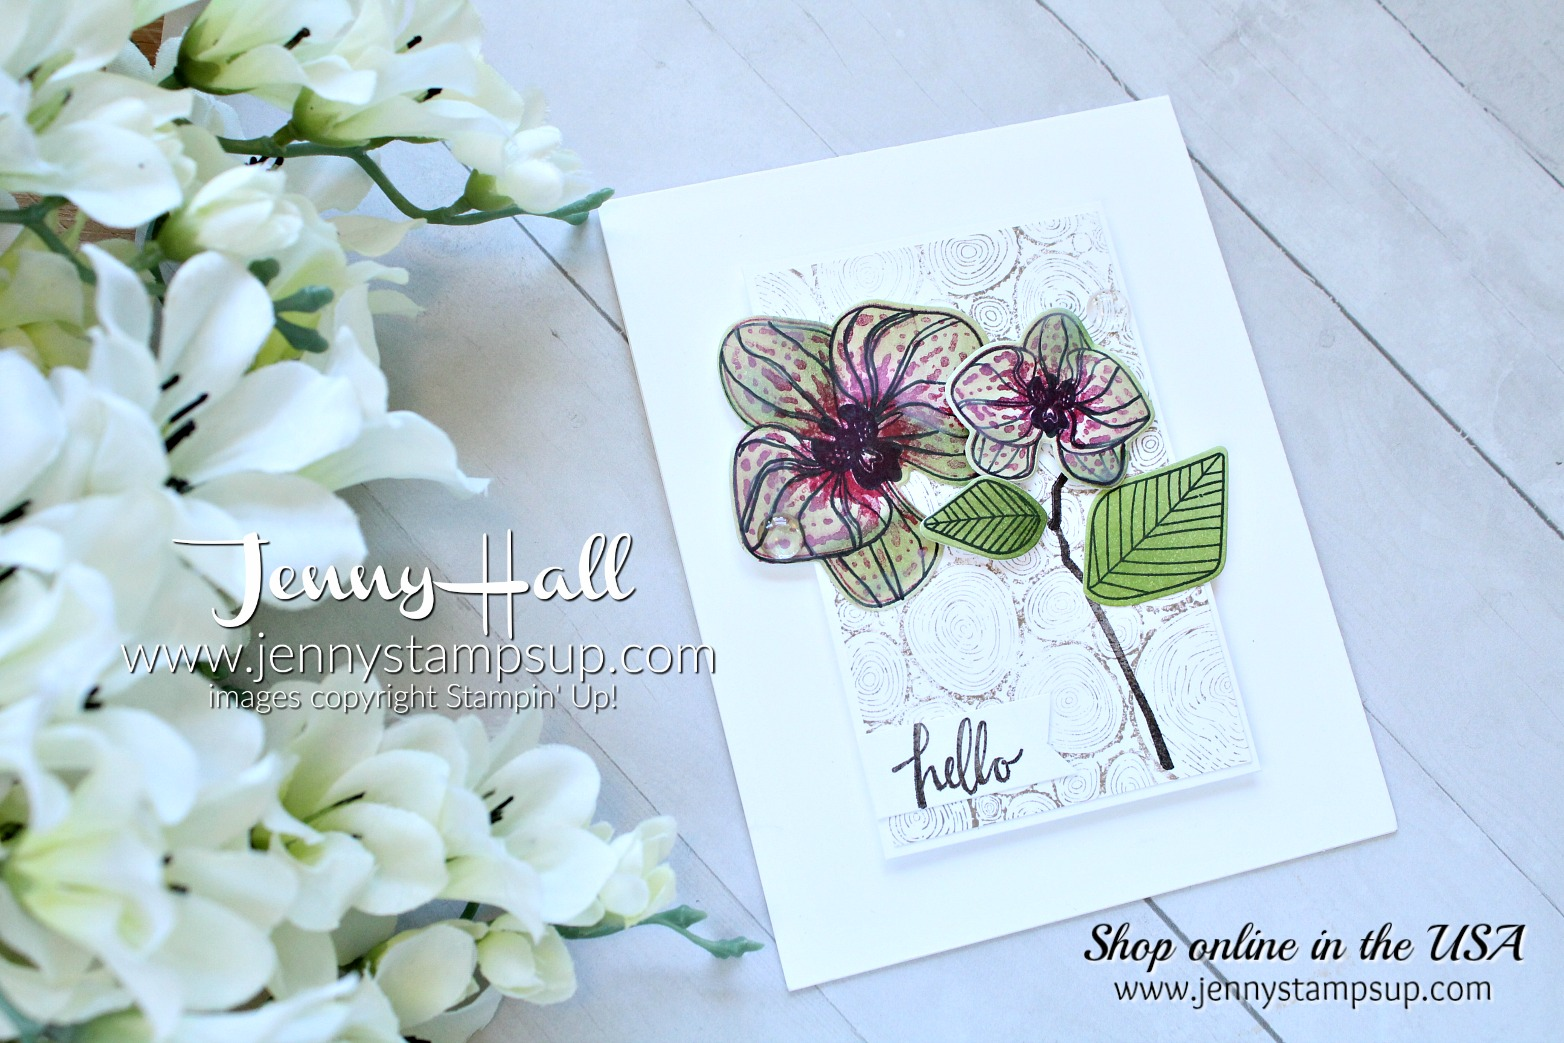 April Ink & Inspiration Blog Hop card created by Jenny Hall at www.jennyhalldesign.com for #cardmaking #climbingorchid #orchidstamp #stampinup #jennyhall #jennyhalldesign #jennystampsup #videotutorial #youtuber #stamping #orchidcard #cascards #cleanandsimplecards #stamparatus